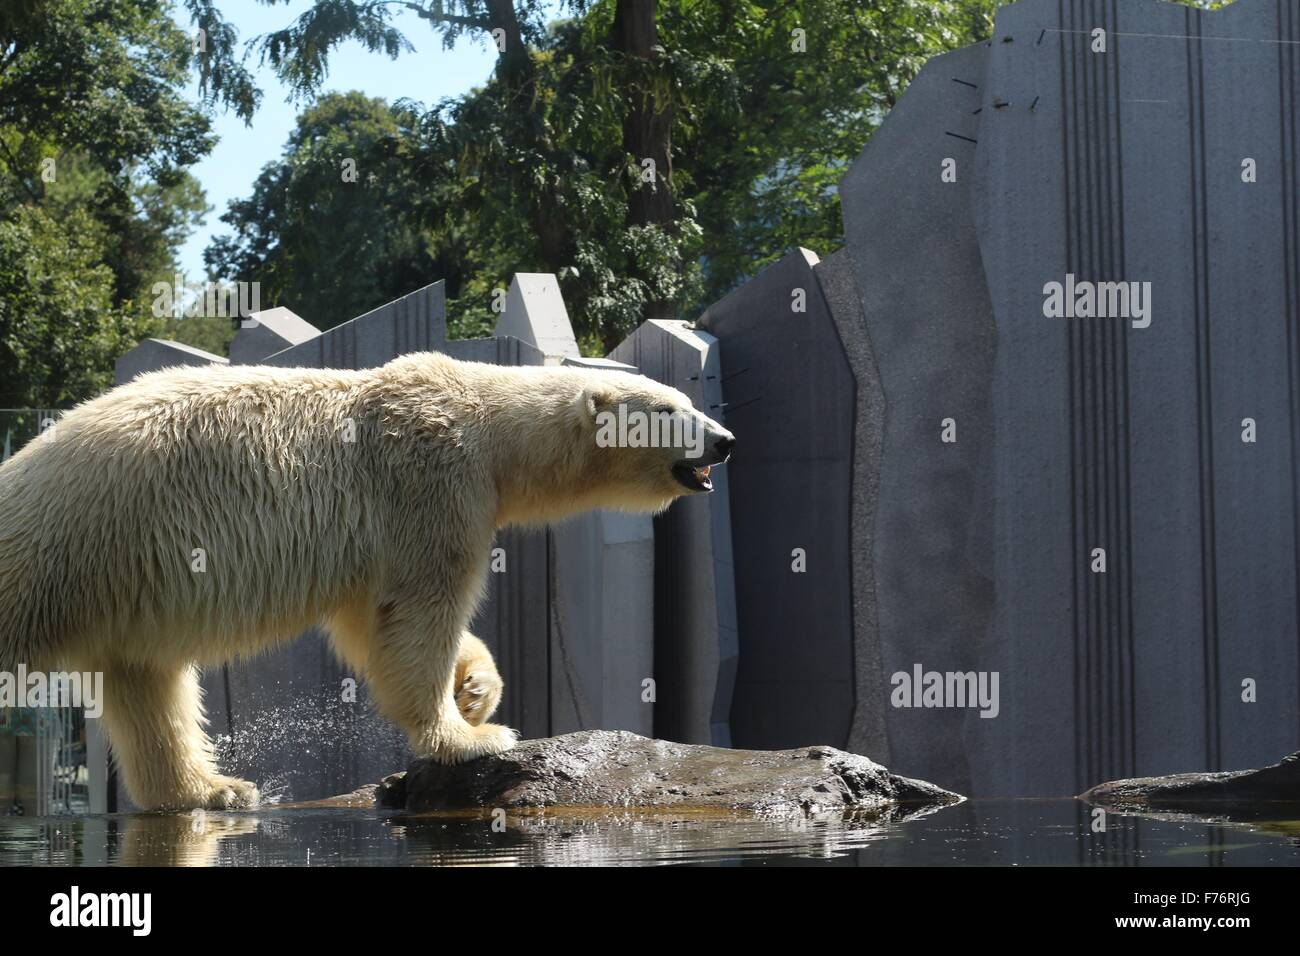 Close-up of a polar bear standing outside under sunlight - Stock Image